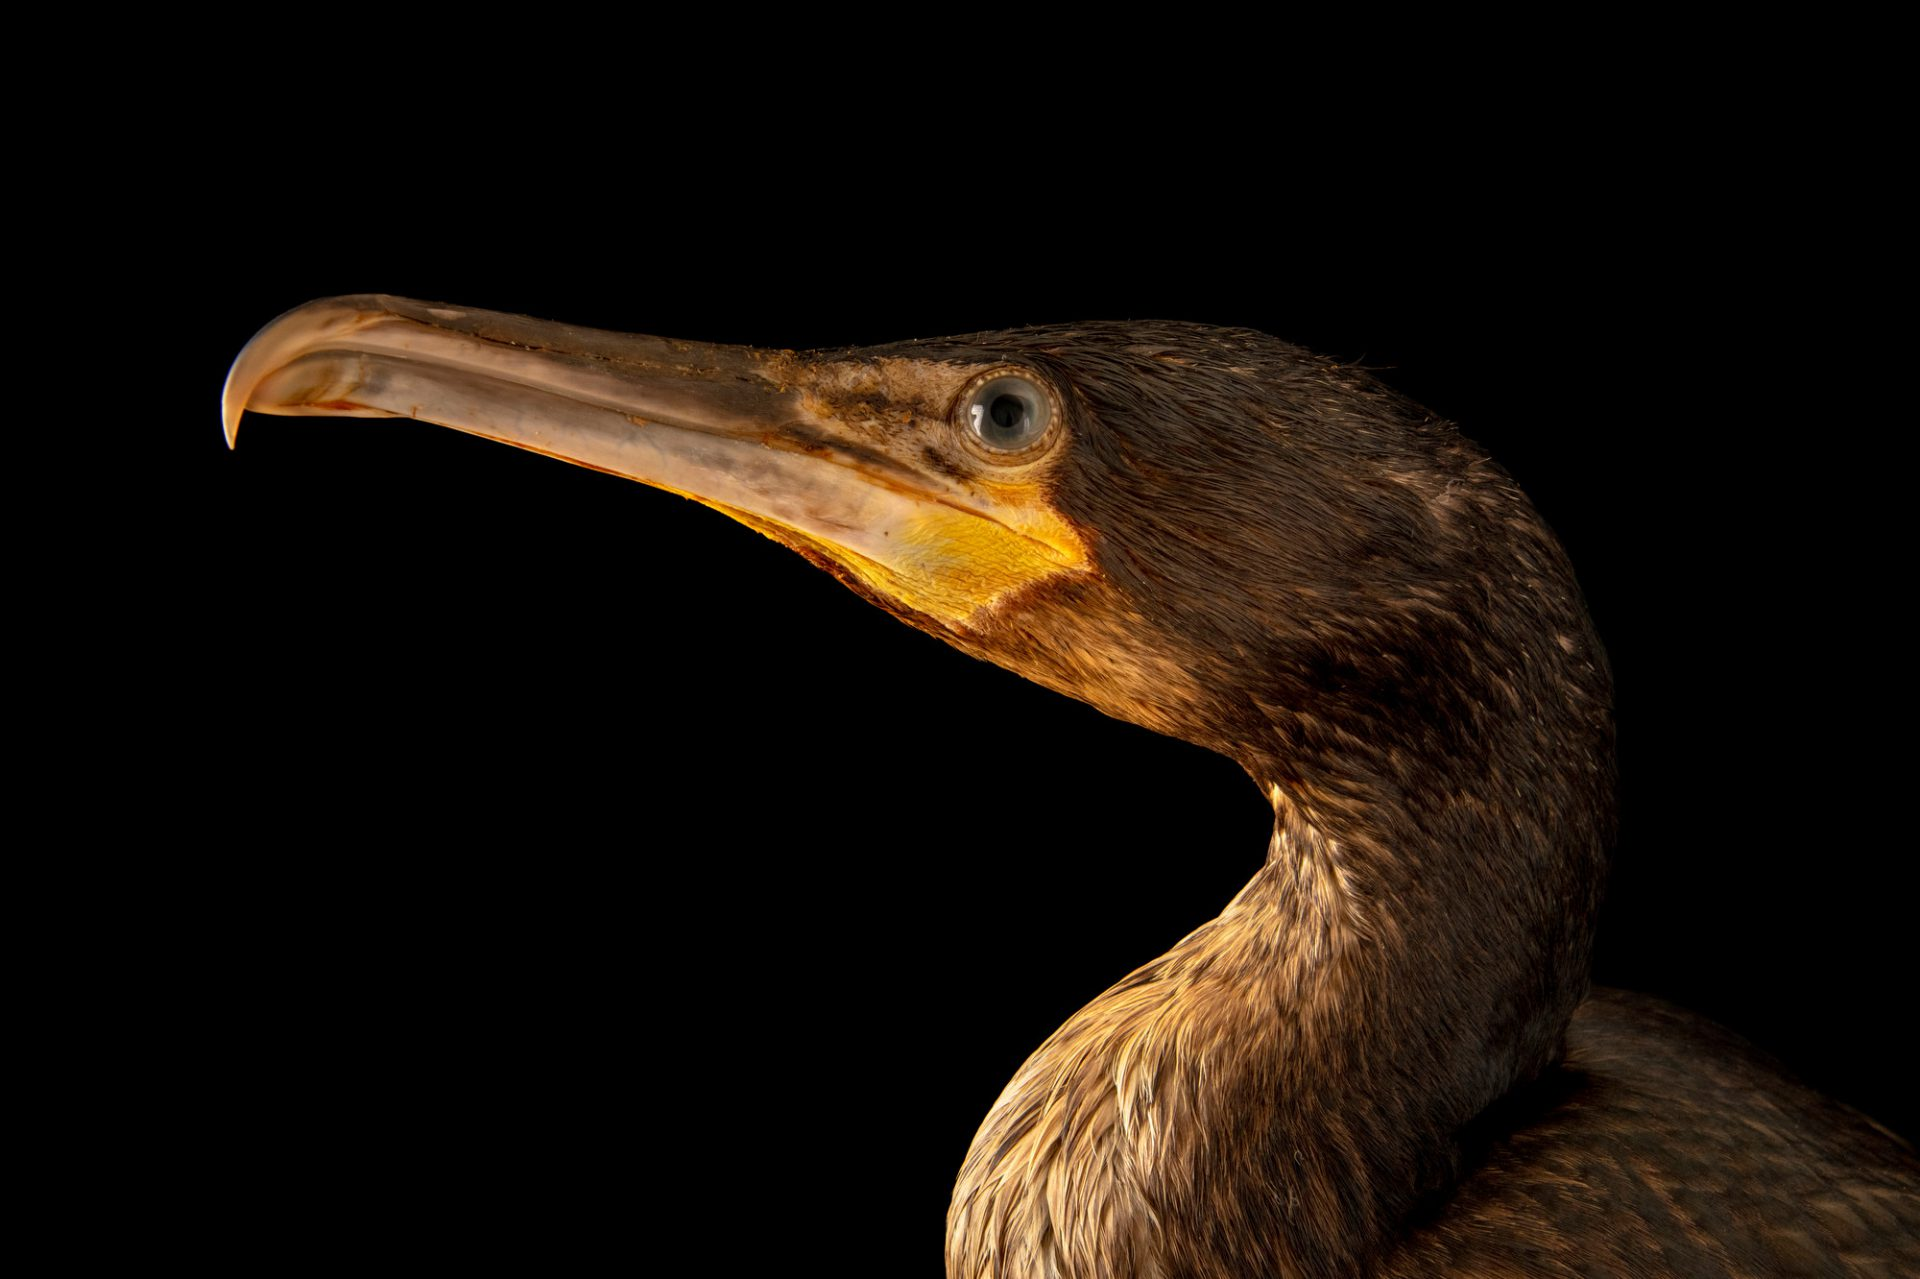 Photo: A cormorant (Phalacrocorax carbo carbo) at Hessilhead Wildlife Rescue.